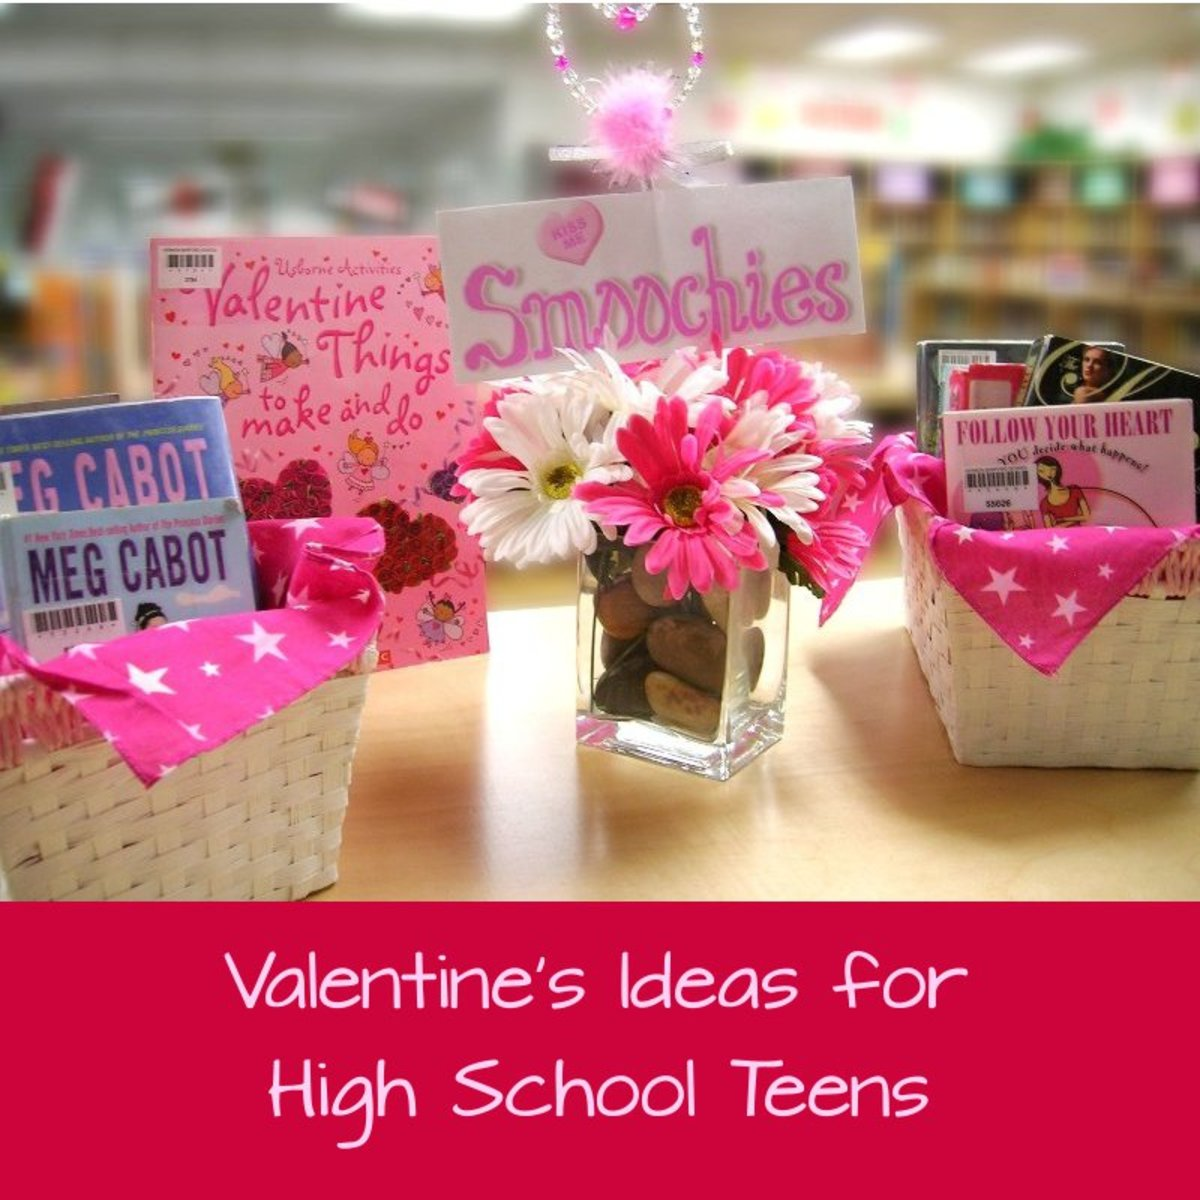 Valentine's Ideas for High School Teens